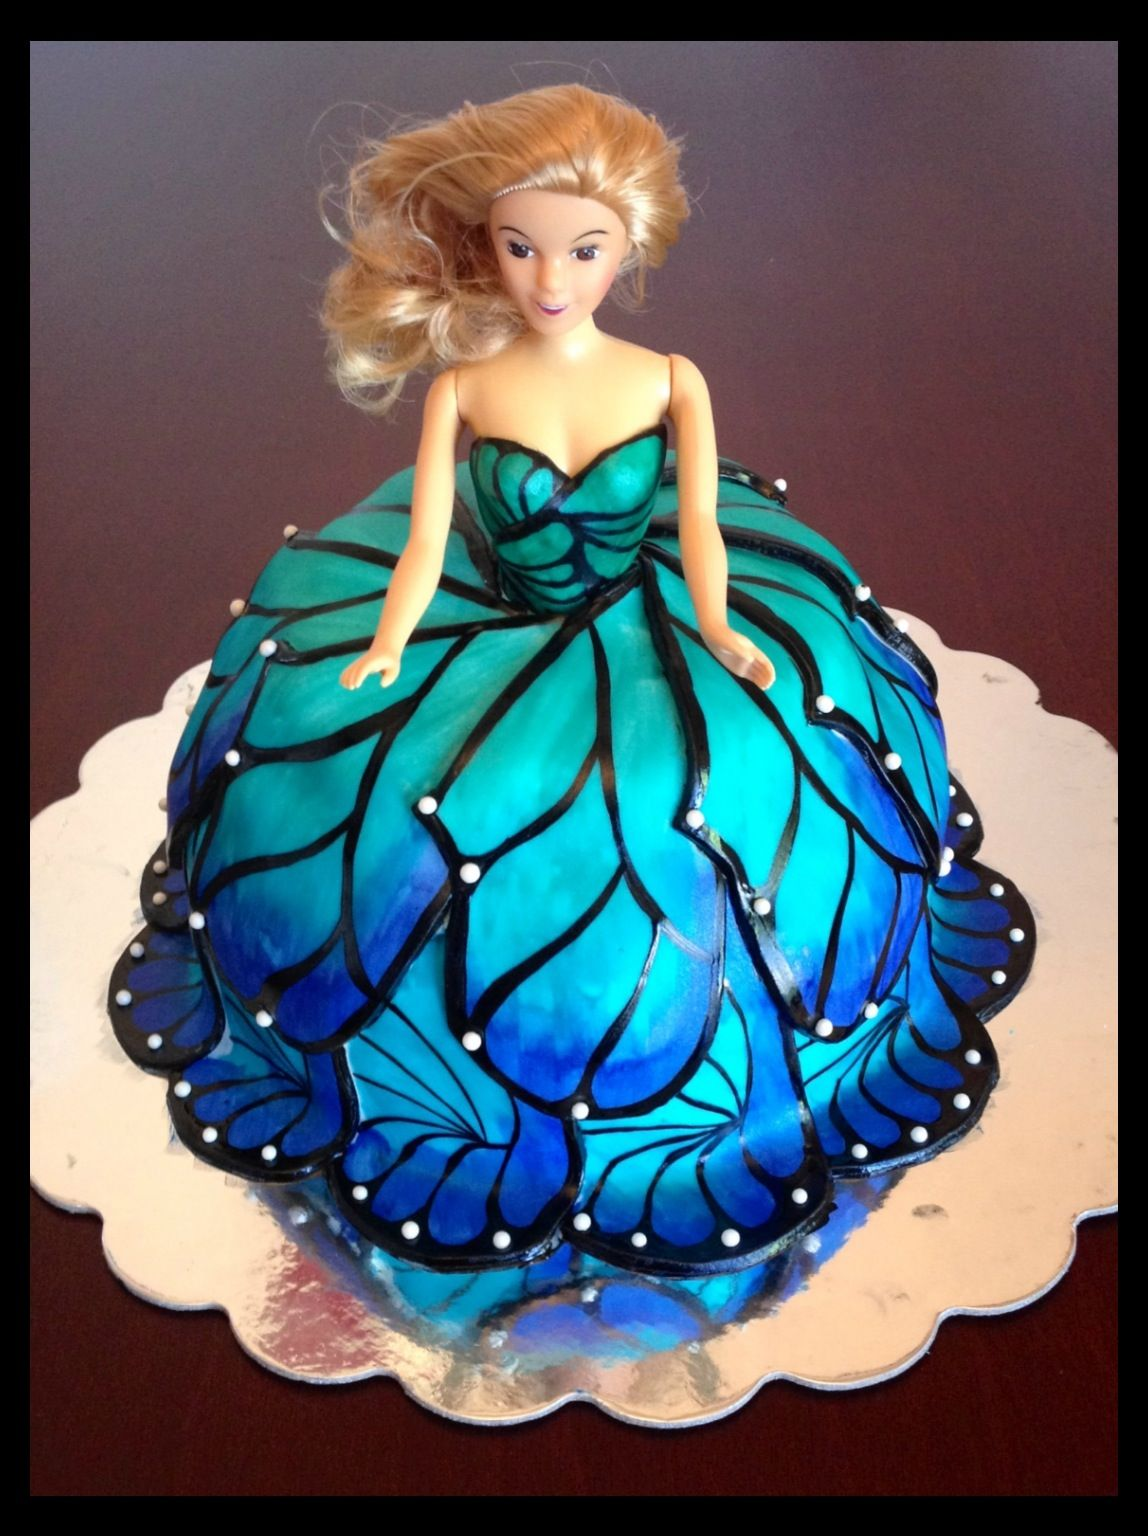 Doll Cake With A Butterfly Wing Dress